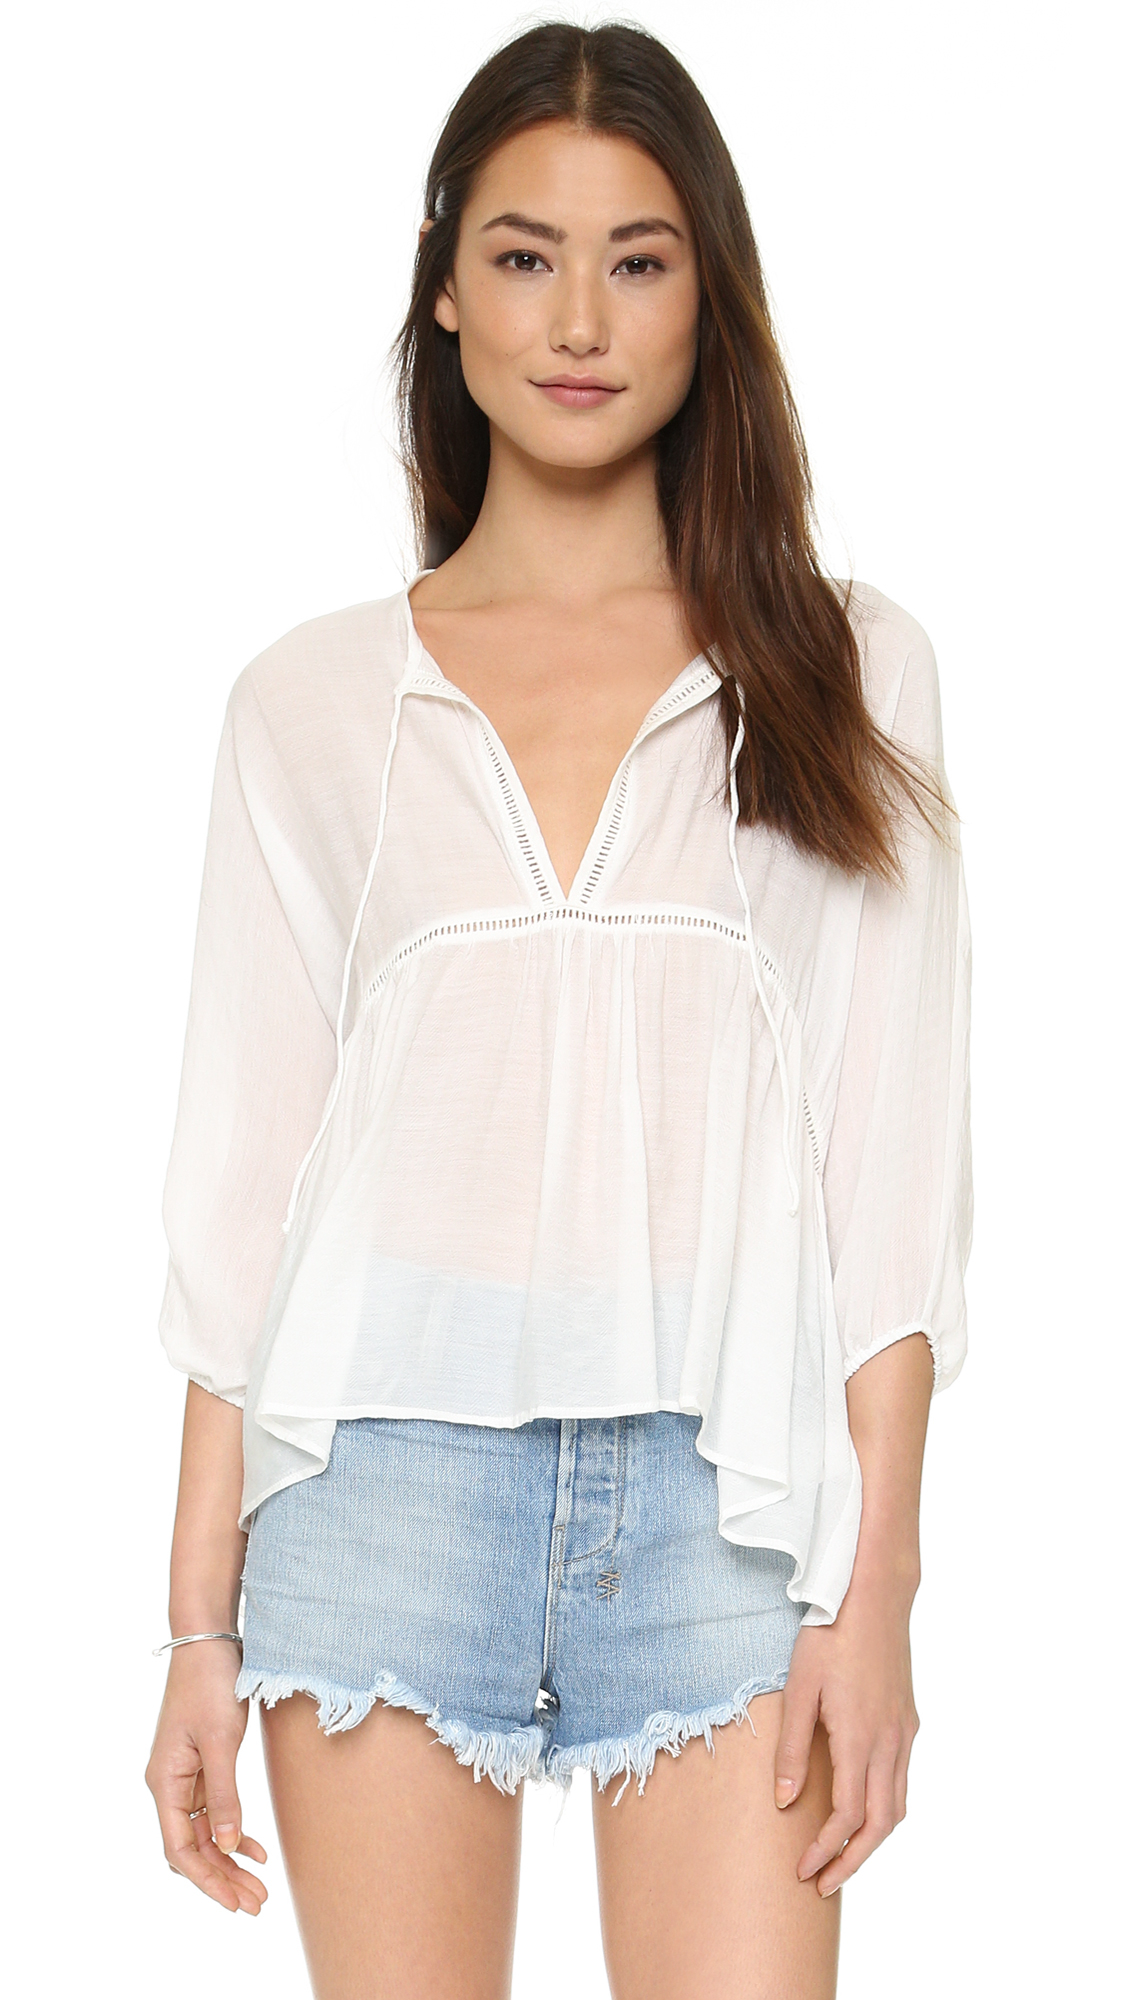 07d67a05c6adff Faithfull The Brand Palm Beach Top in White - Lyst